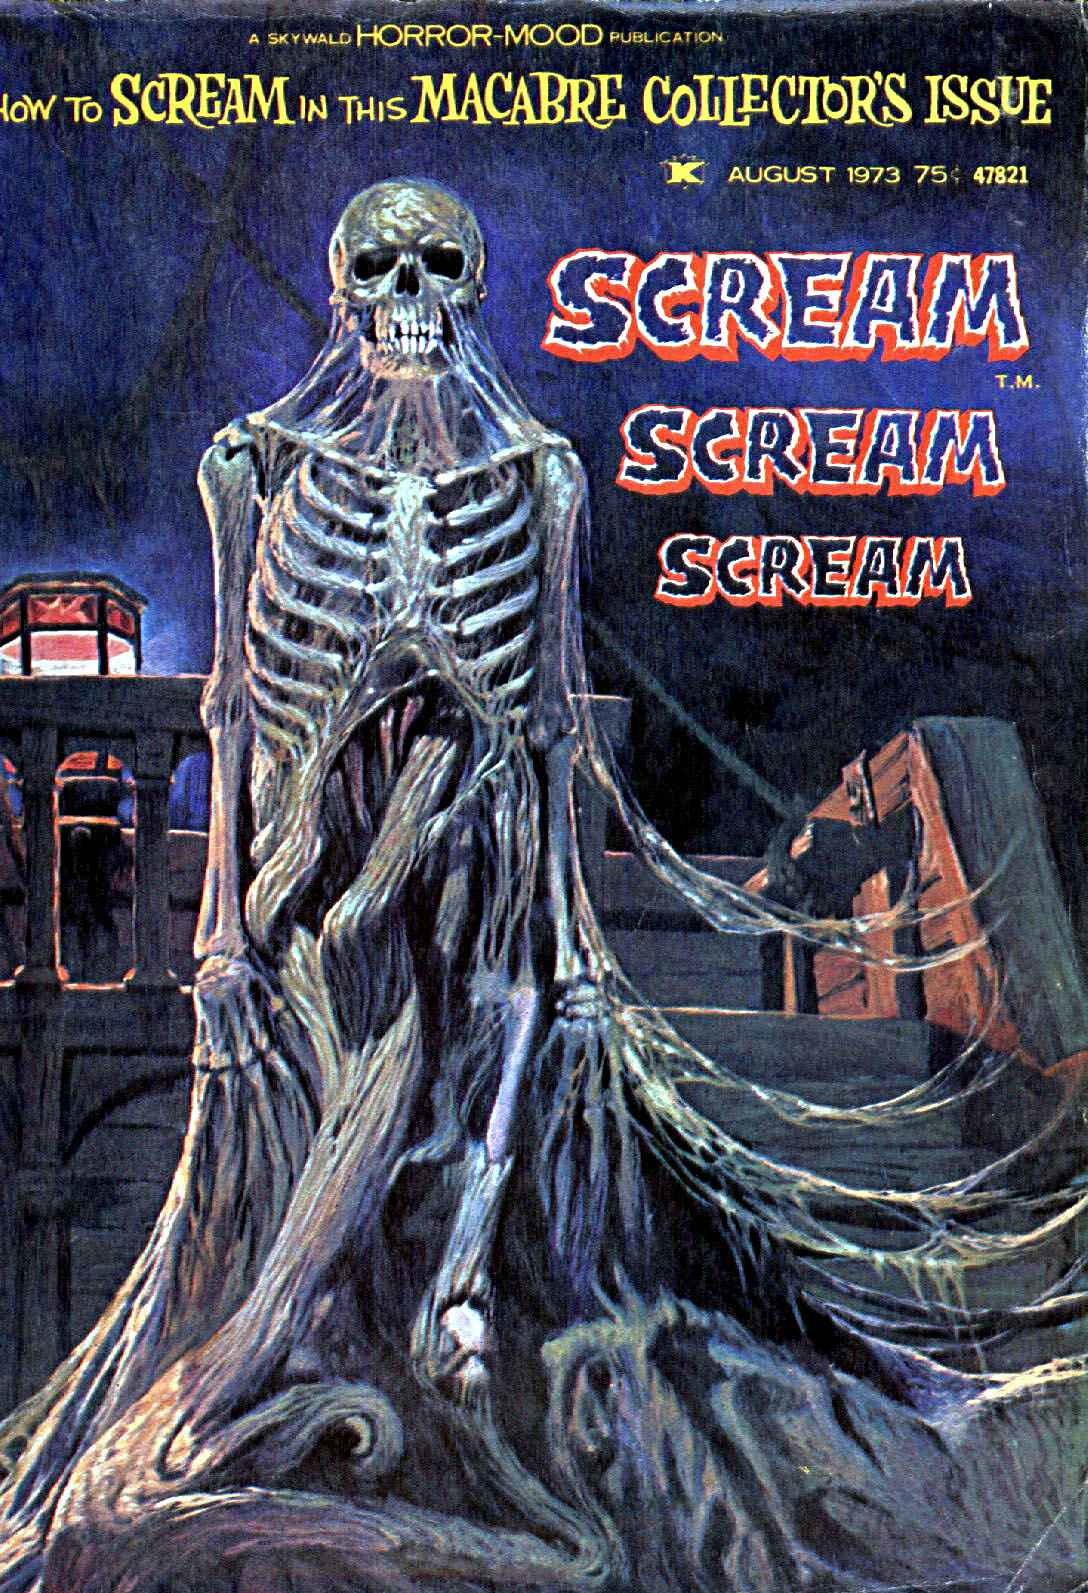 Scream Magazine, Issue 01, August 1973